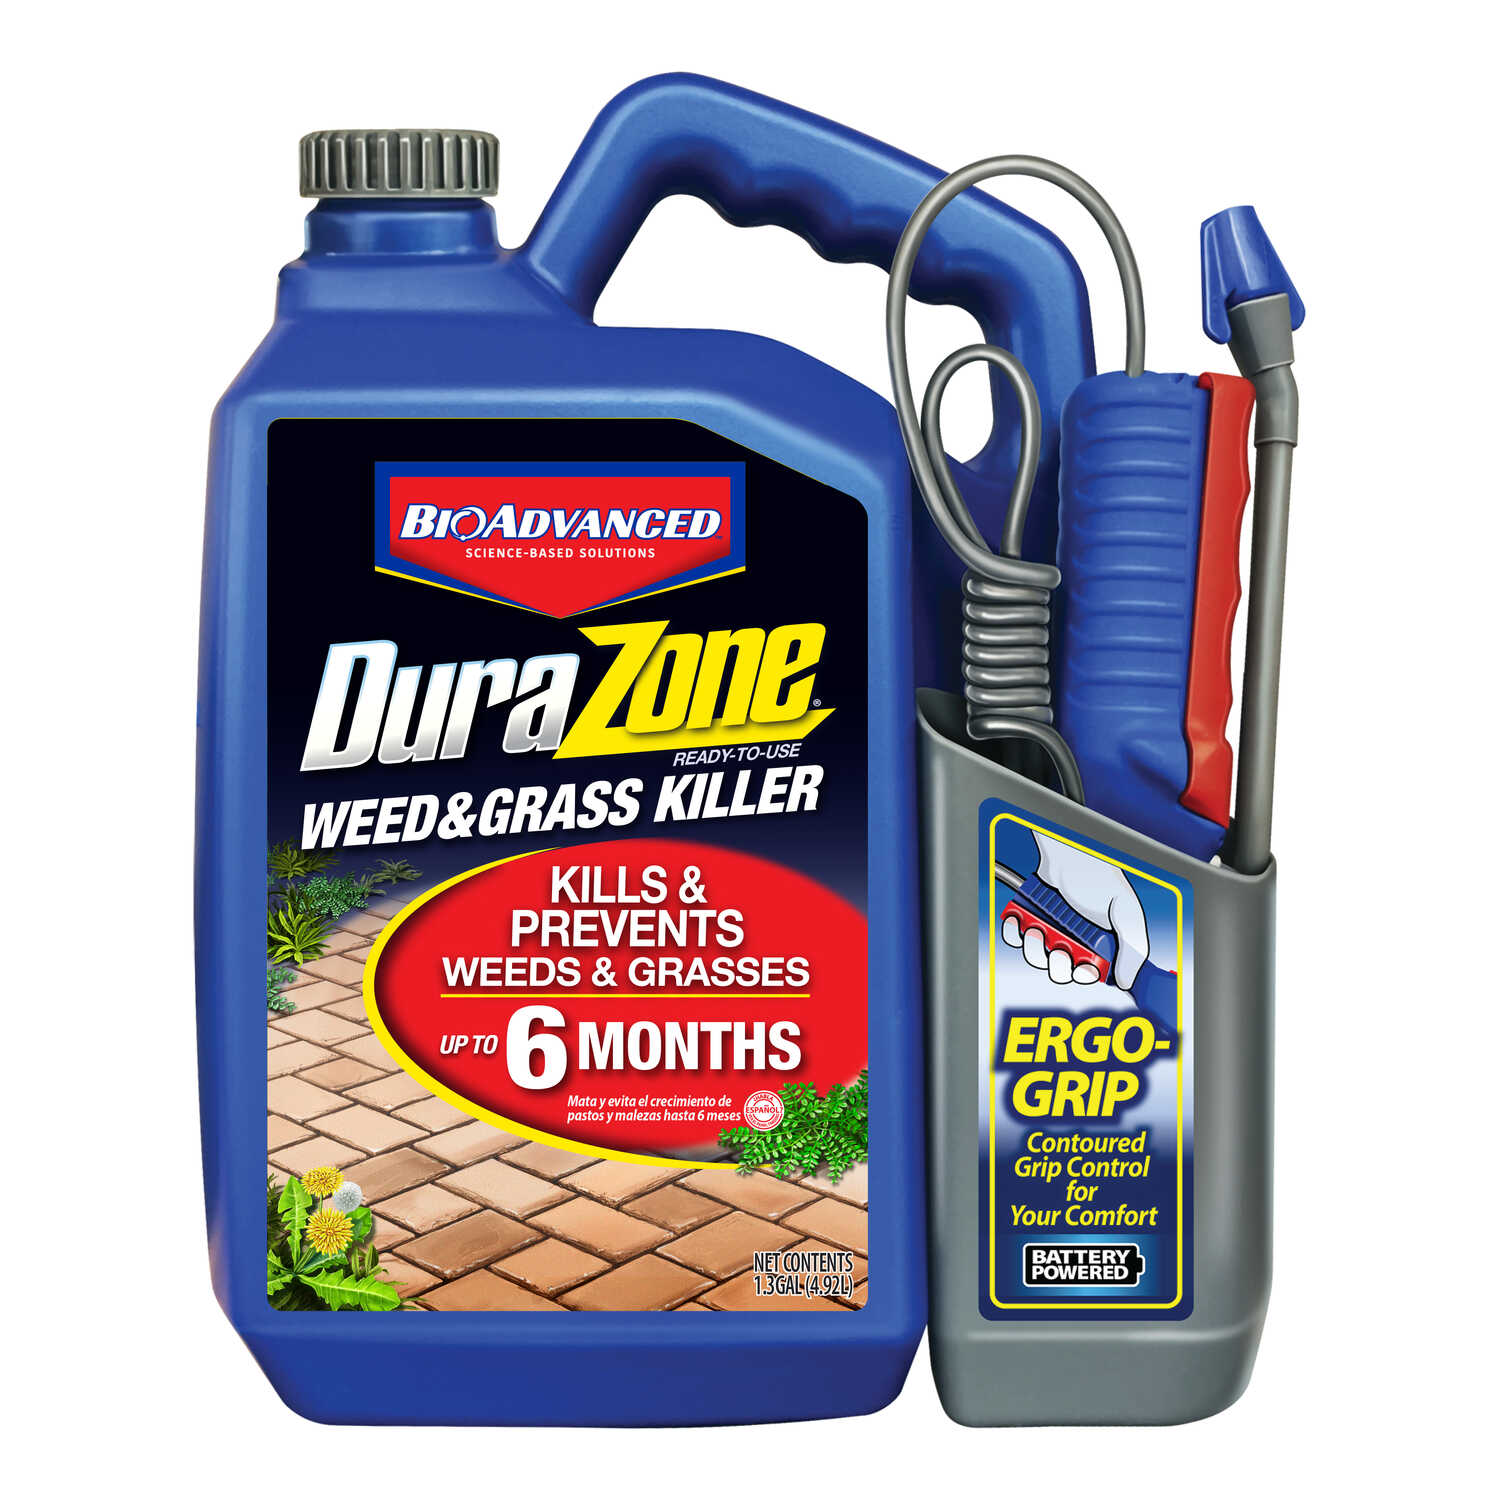 BioAdvanced  DuraZone  RTU Liquid  Weed and Grass Killer  1.3 gal.